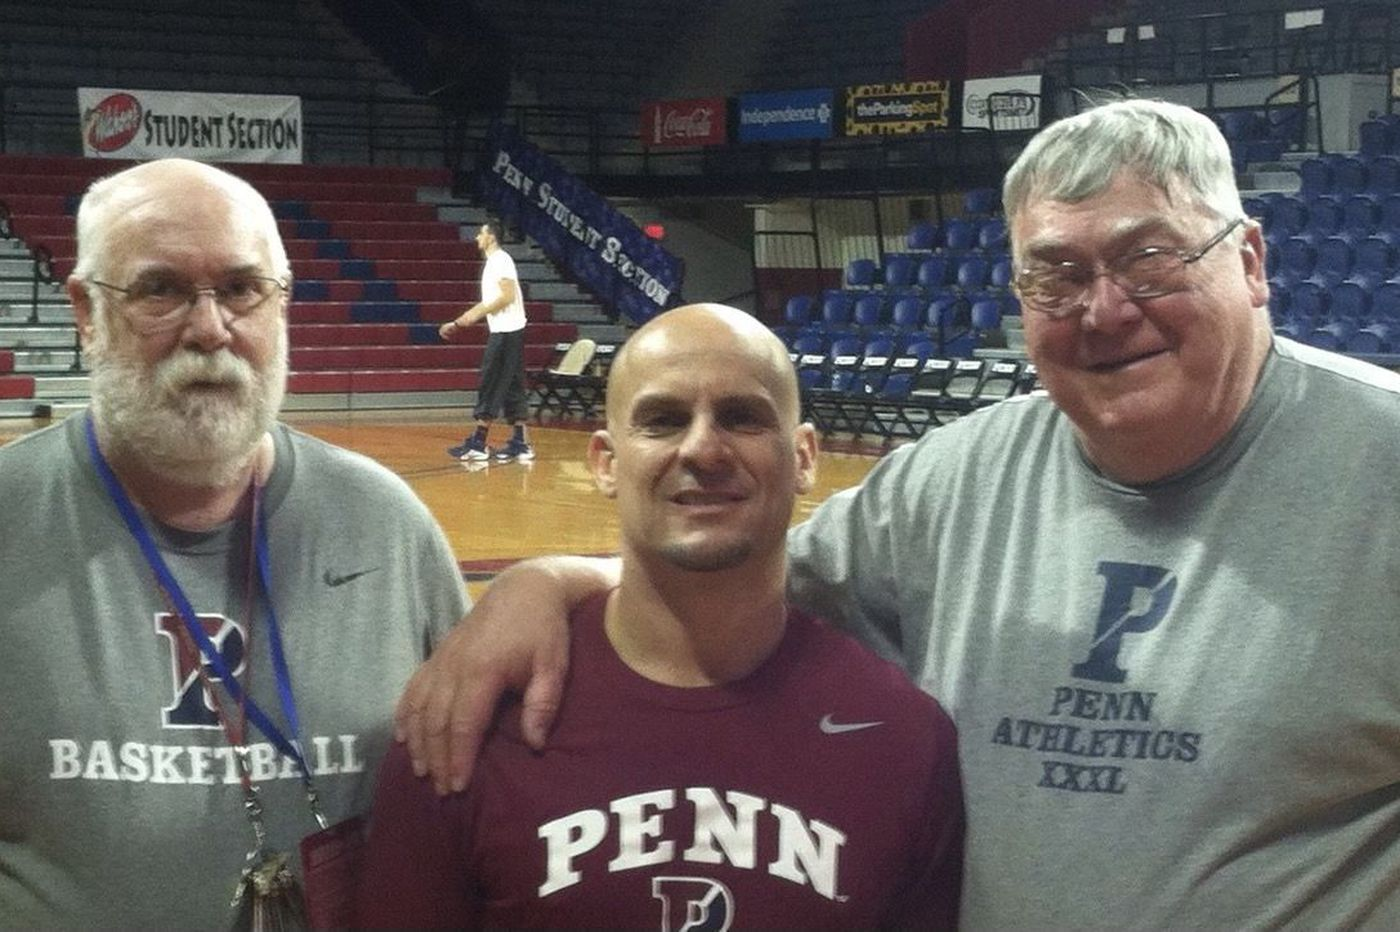 A fixture at the Palestra for more than three decades, Johnny B calls it a day | Mike Jensen